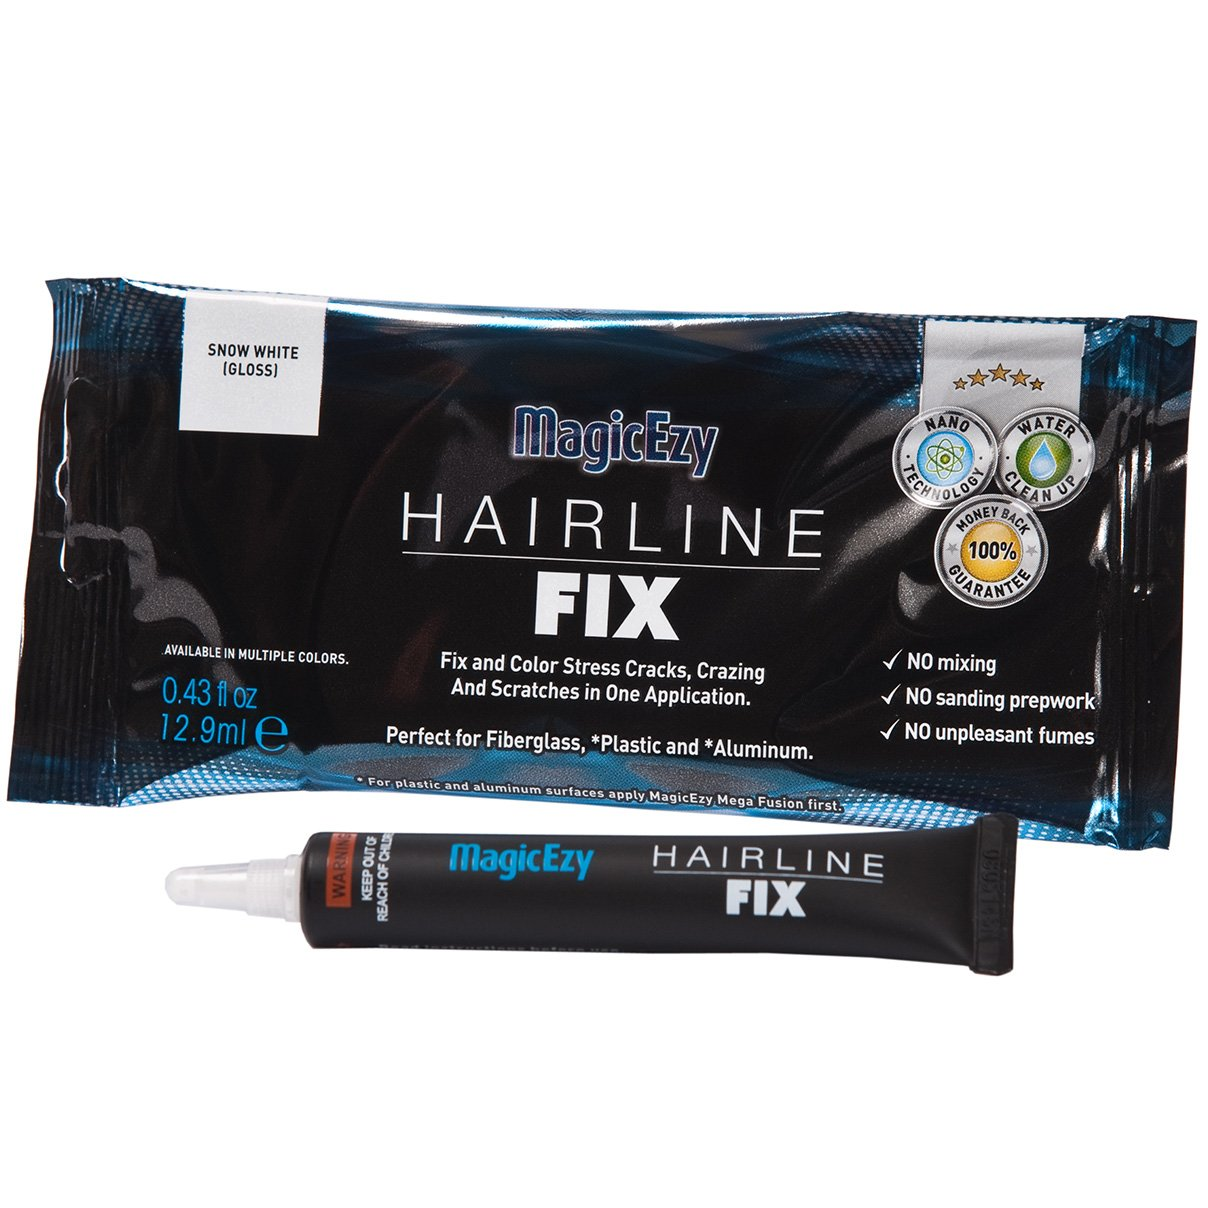 MagicEzy Hairline Fix - One part gelcoat repair - Color Matched to boat - Structural Grade Adhesion - Highly flexible so repairs hold. (Strawberry)